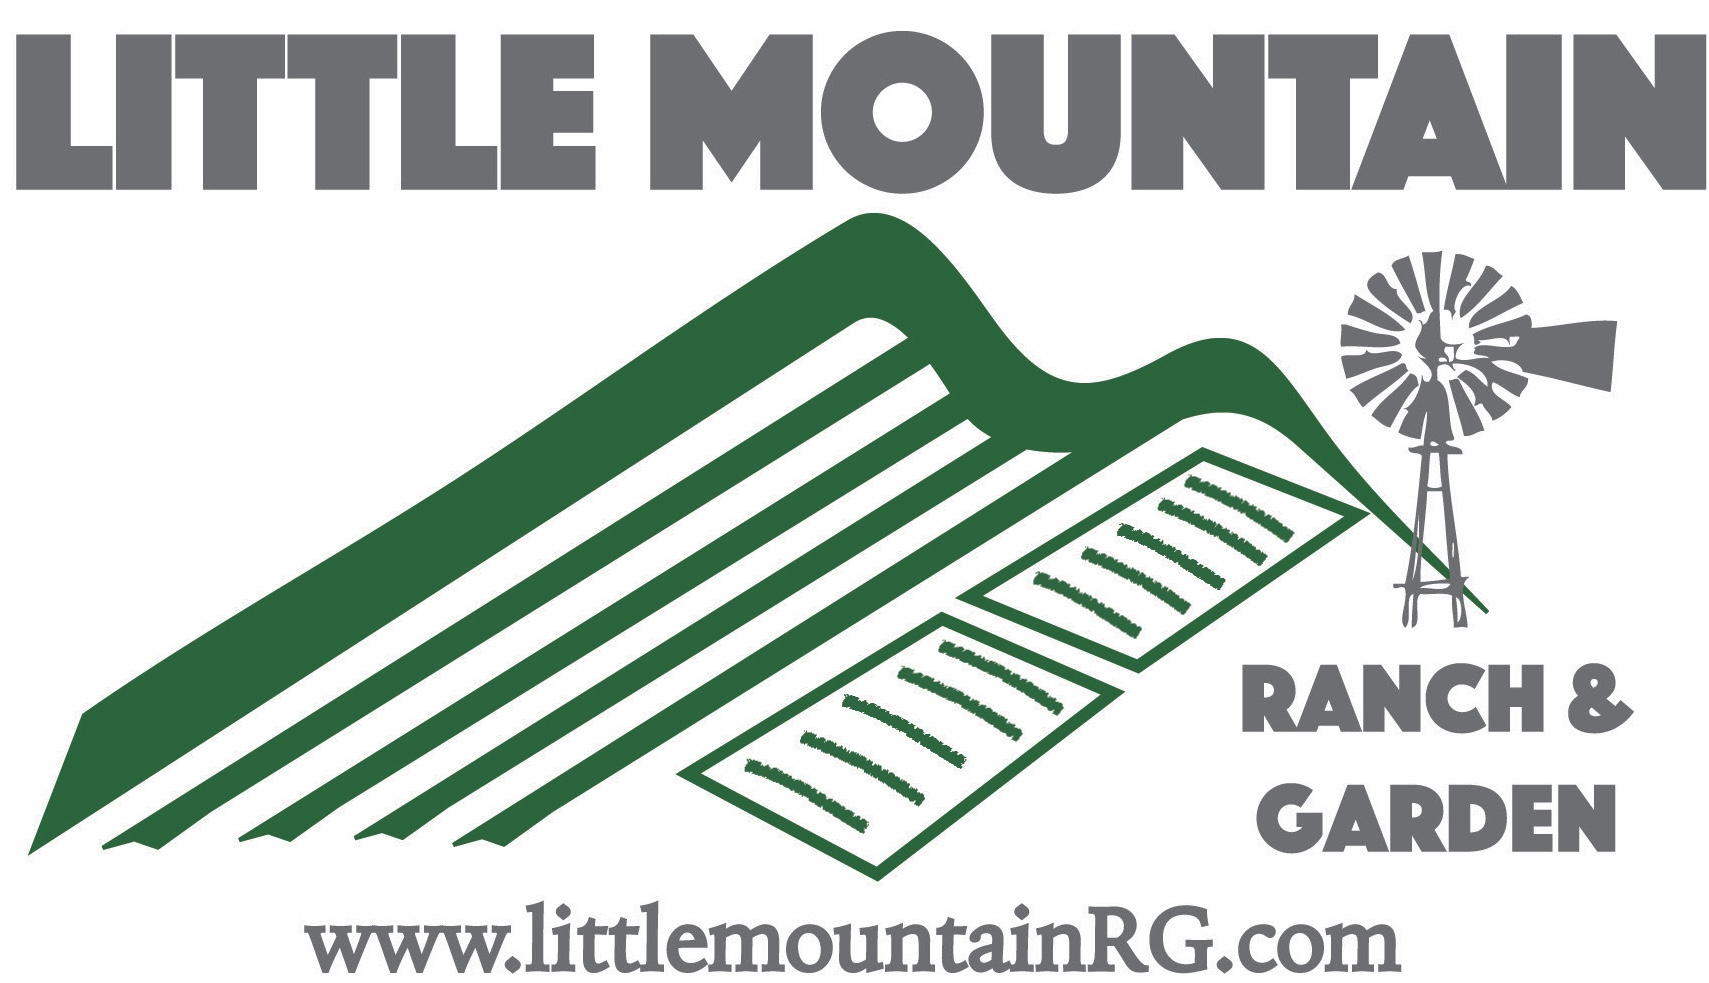 Little Mountain Ranch & Garden Logo